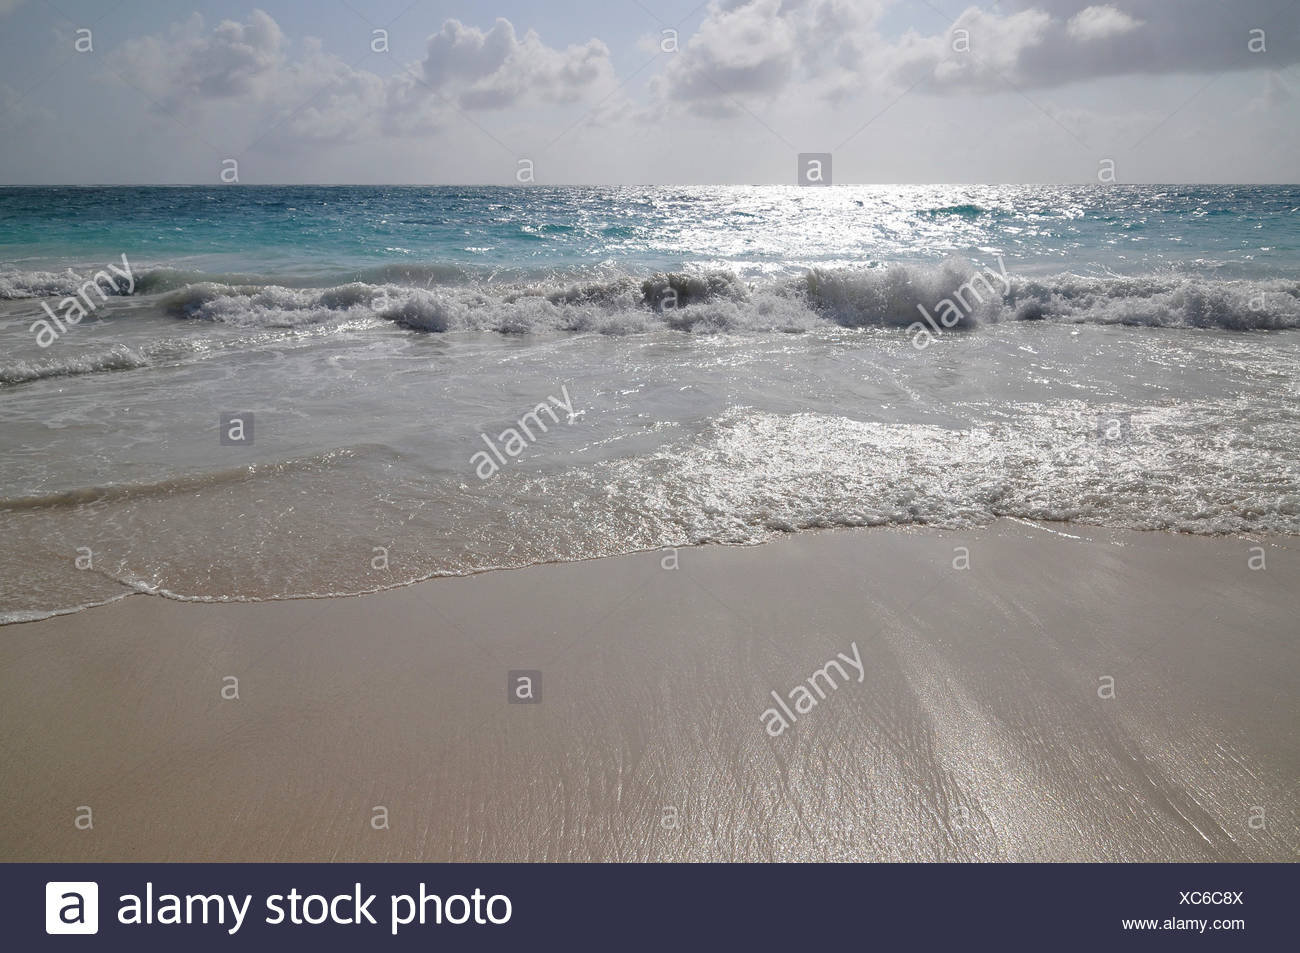 Bay at the foot of the Castle, El Castillo, view onto the open ocean, Tulum, Mayan archaeological excavation, - Stock Image